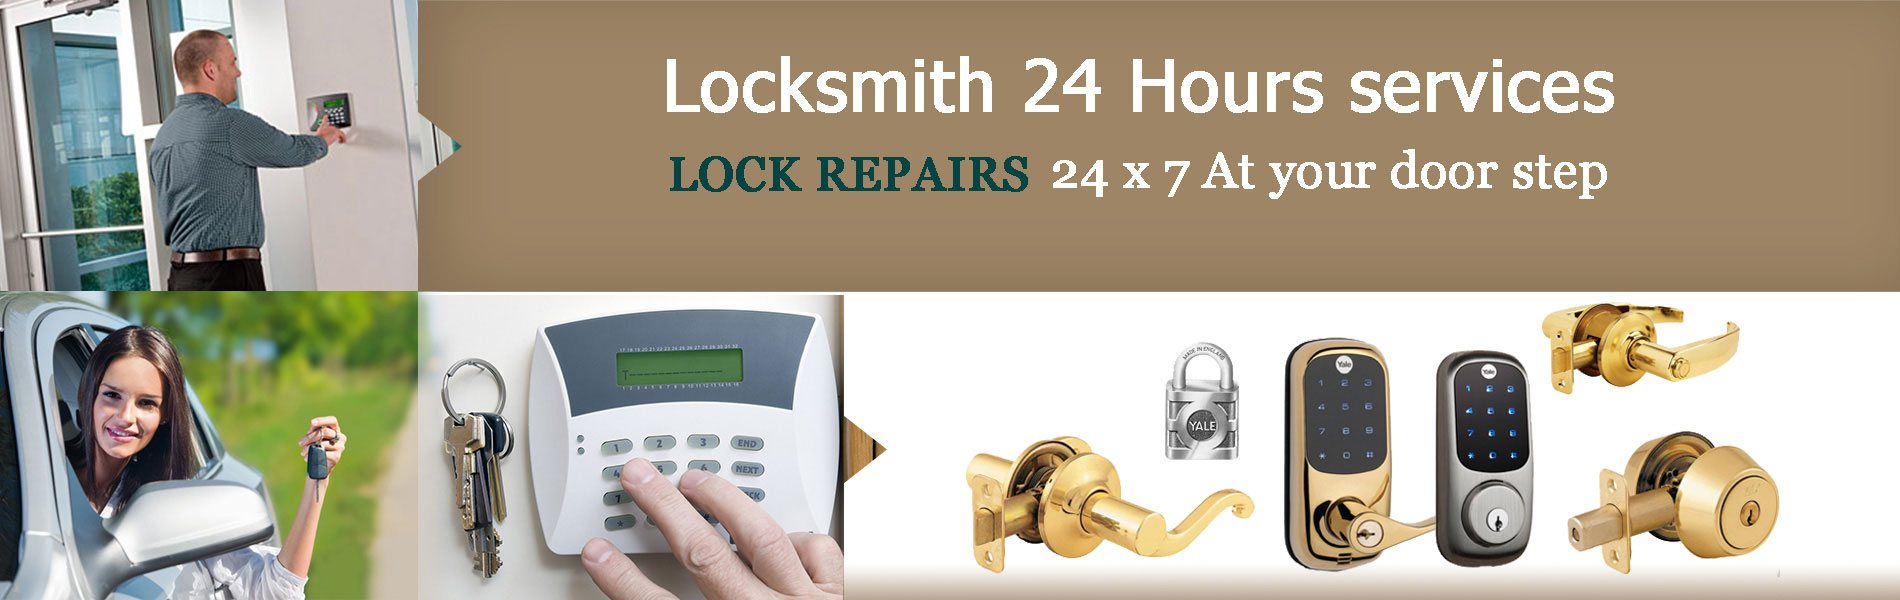 Elite Locksmith Services Tuckahoe, NY 914-801-1177